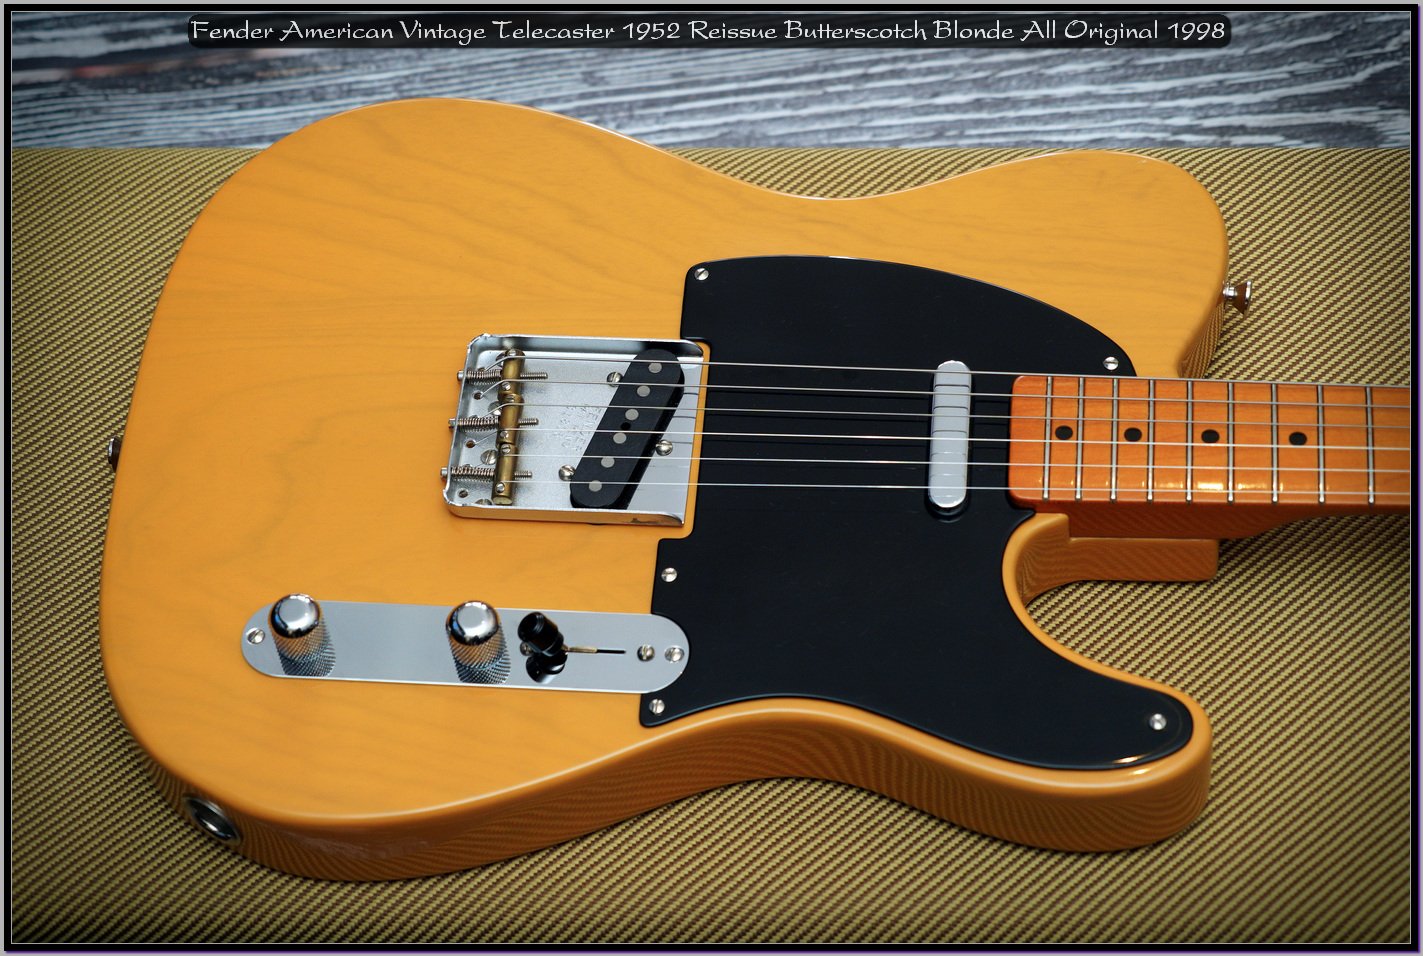 Fender American Vintage Telecaster 1952 Reissue Butterscotch Blonde All Original 1998 04_x1440.jpg